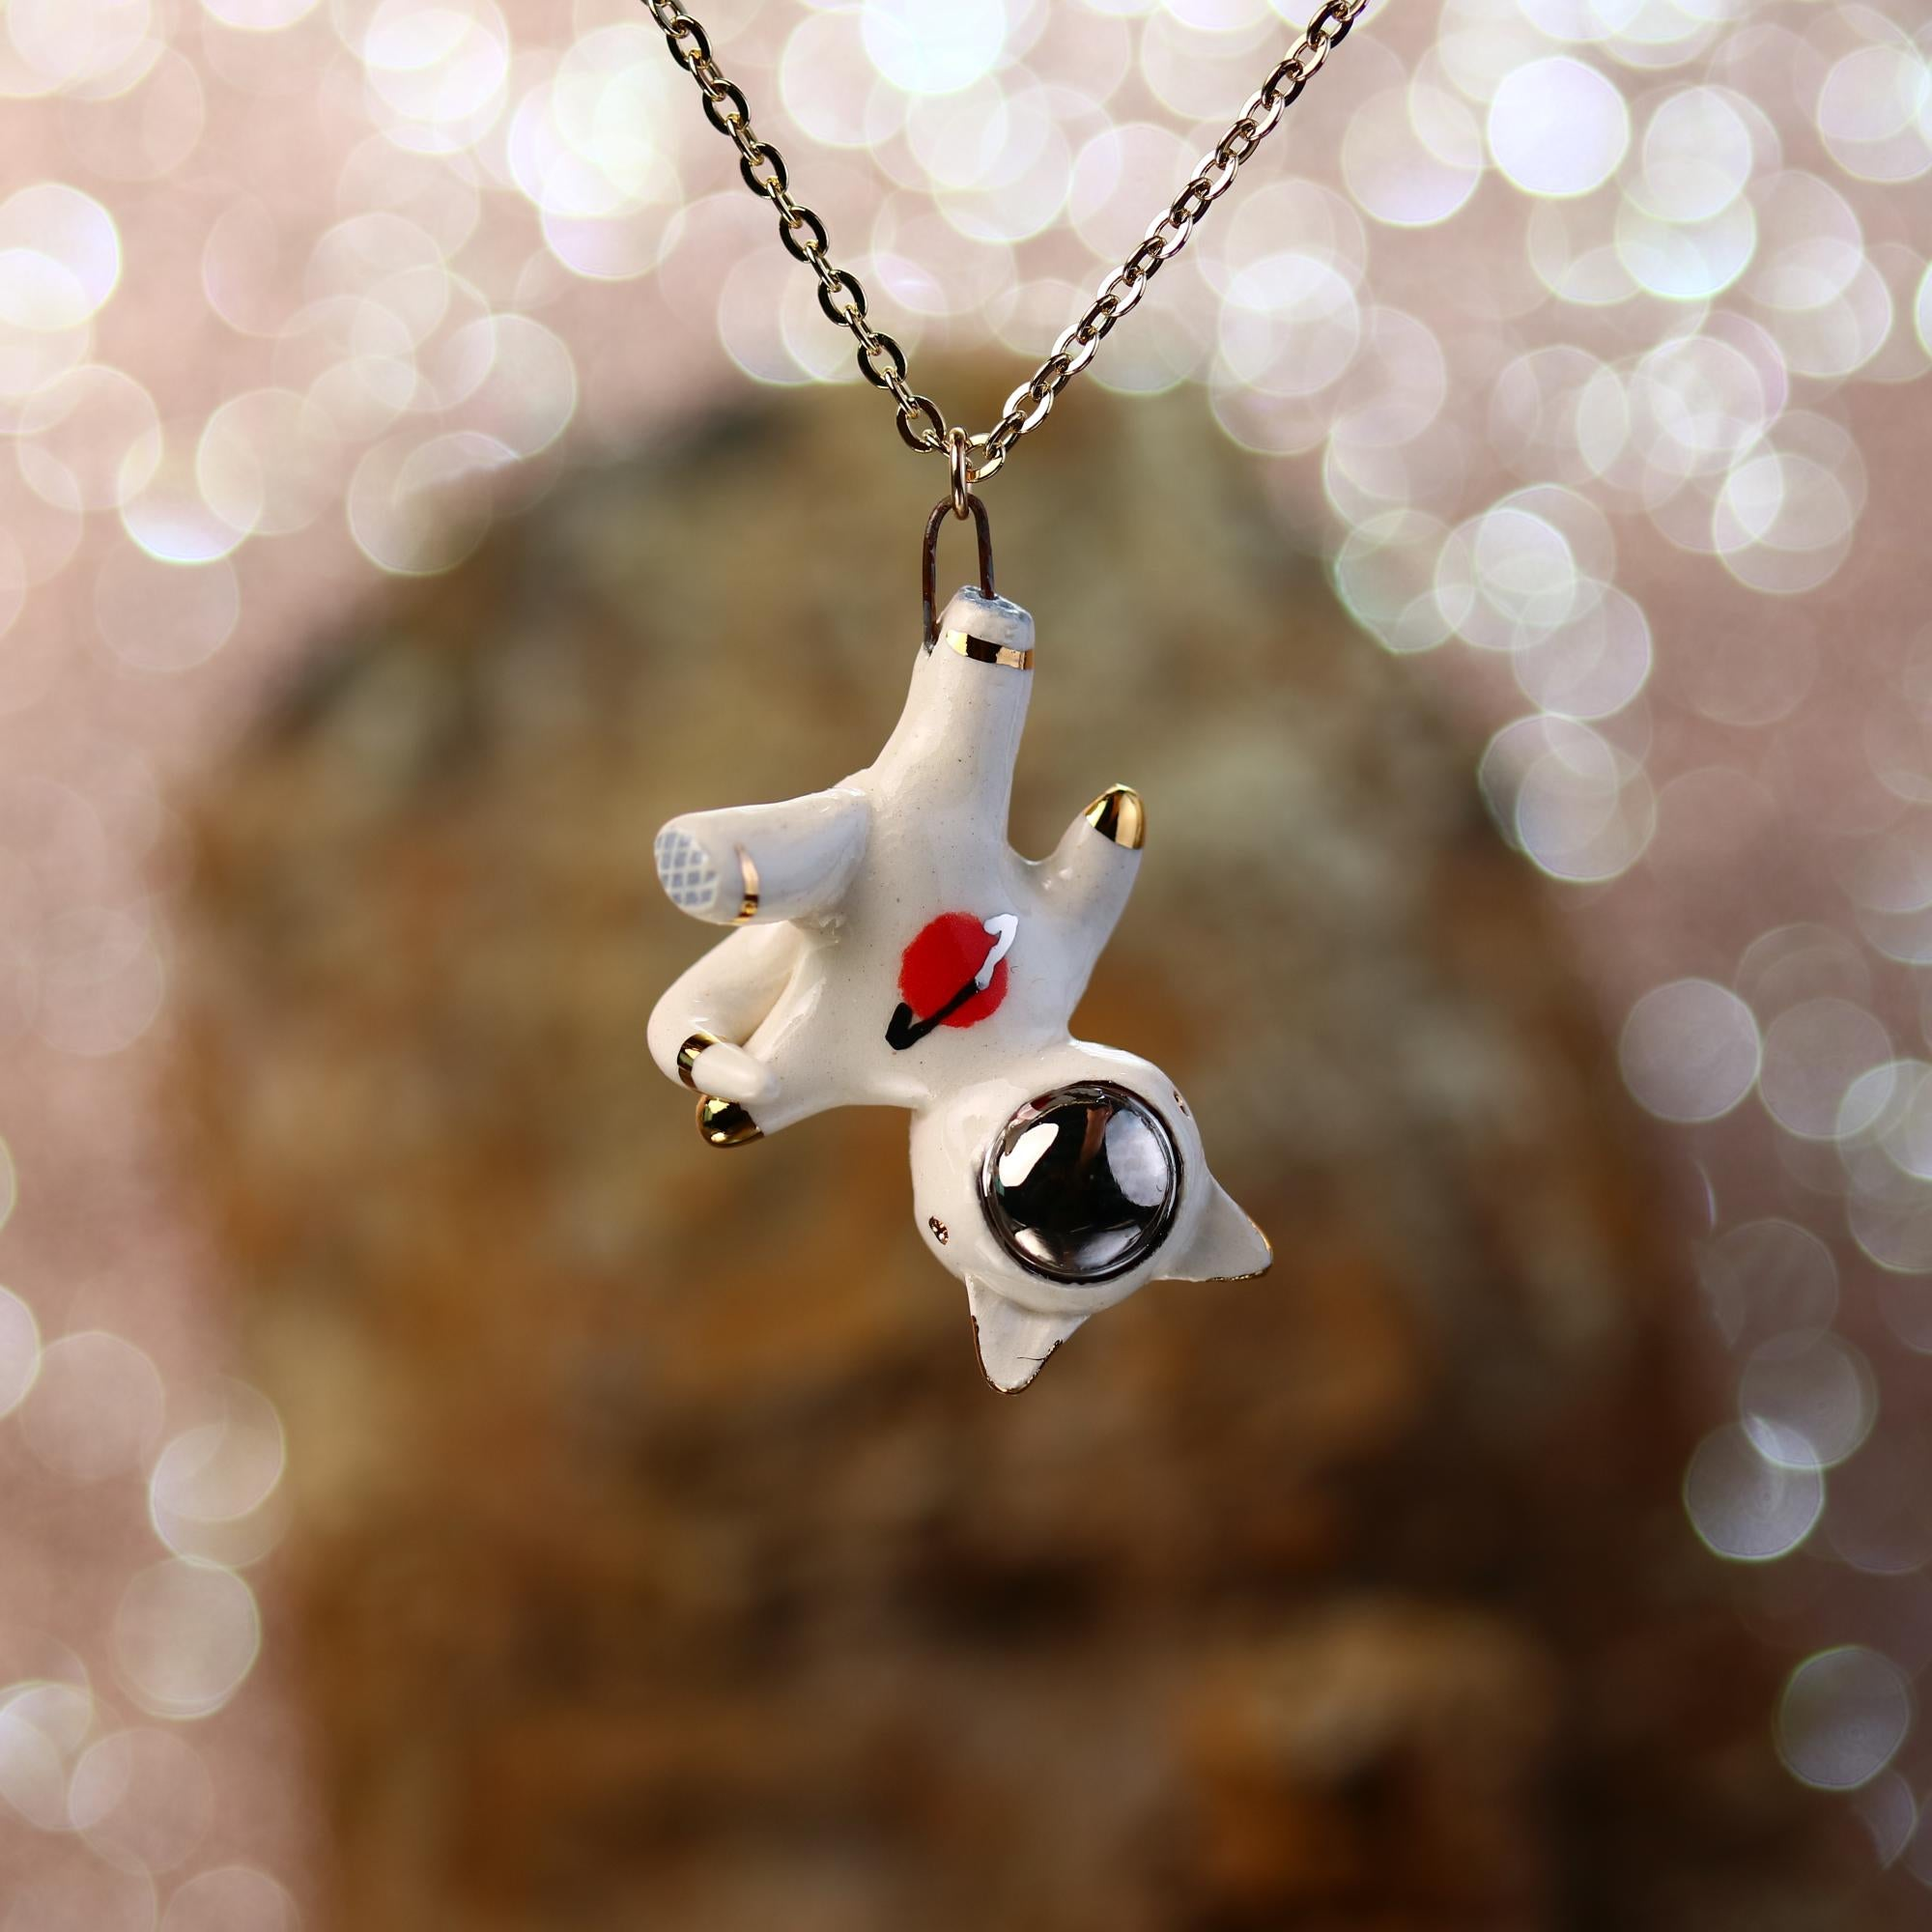 Floating Planet Catronaut Necklace